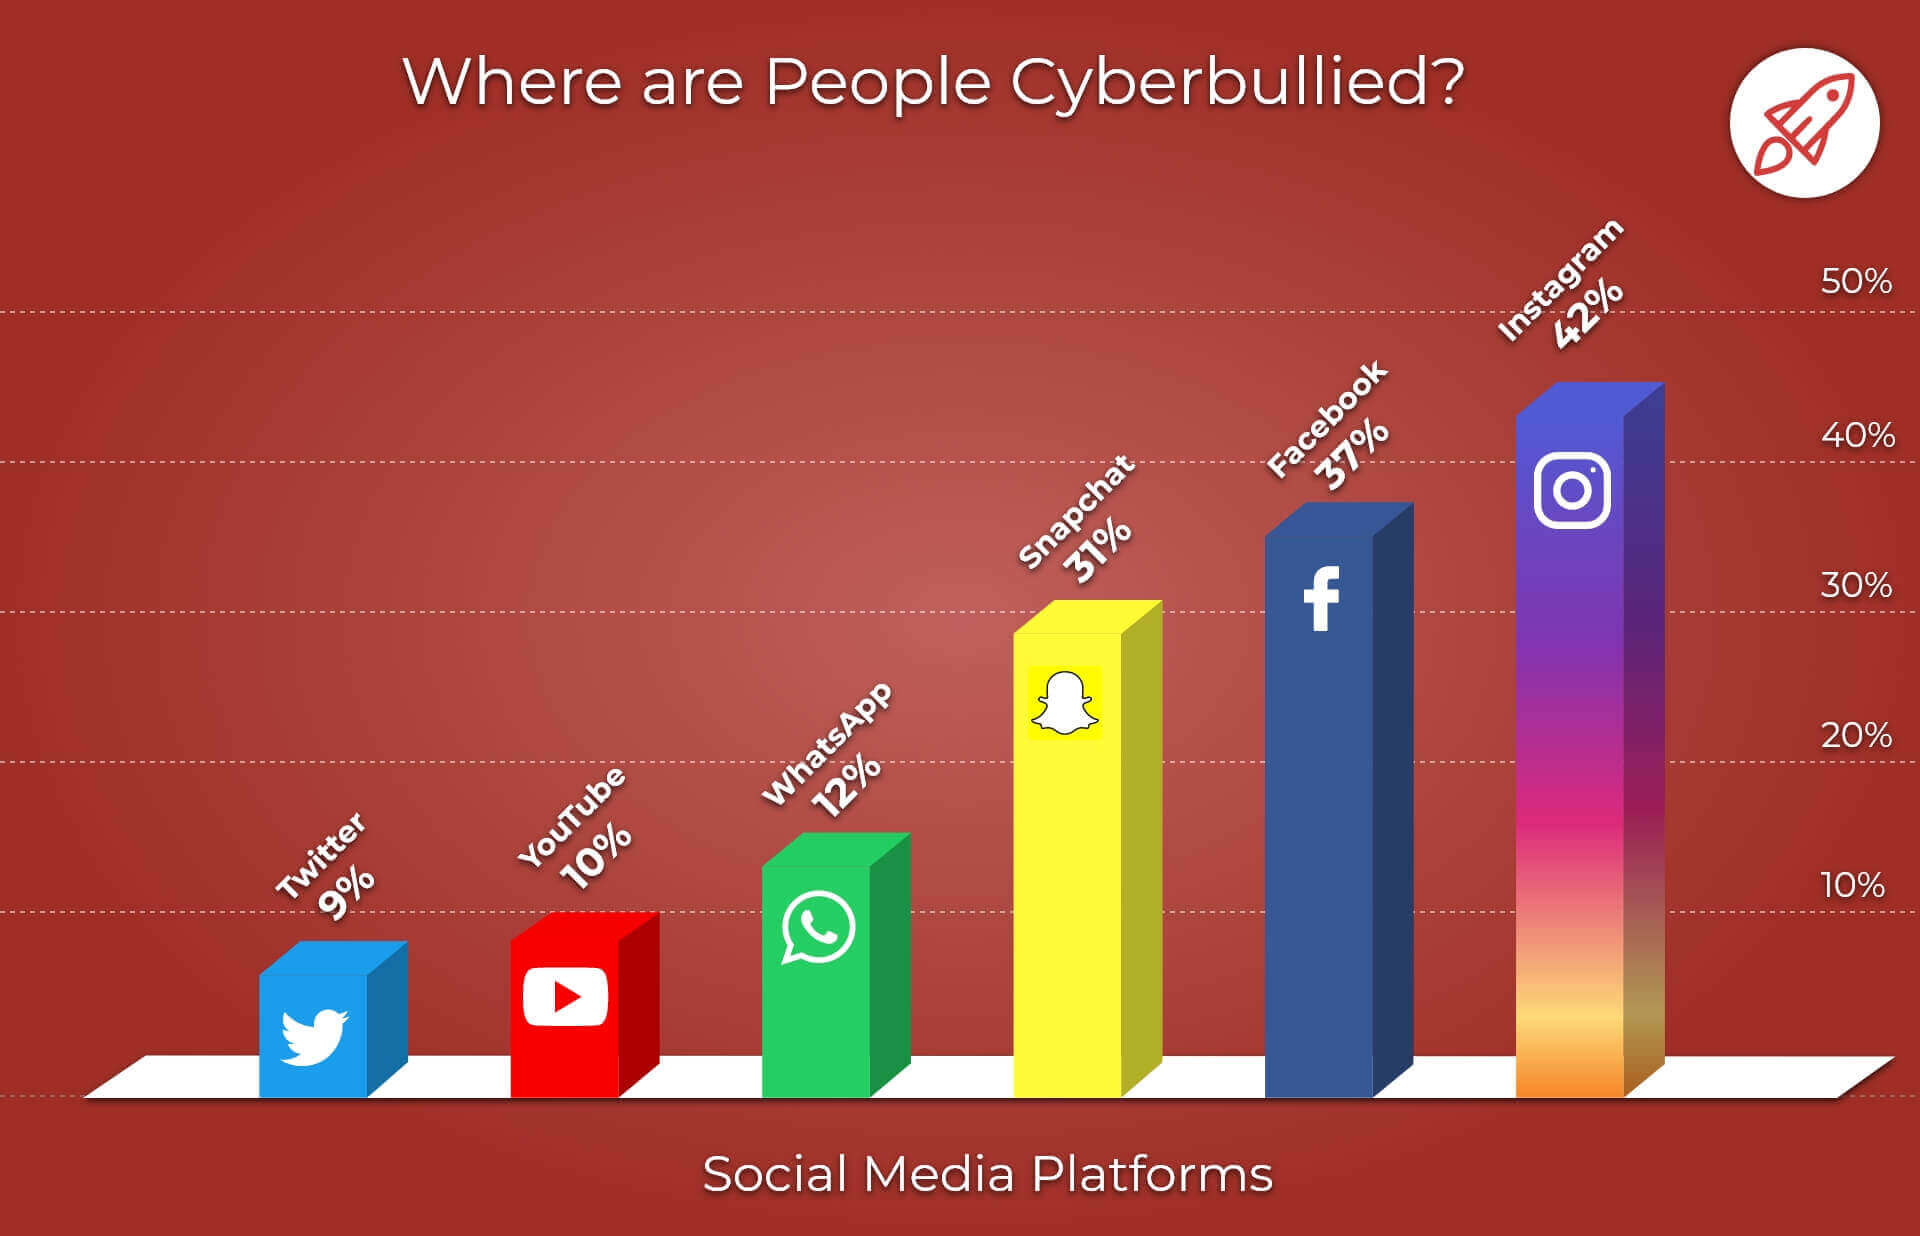 cyber-bullying on Social Meadia Platforms